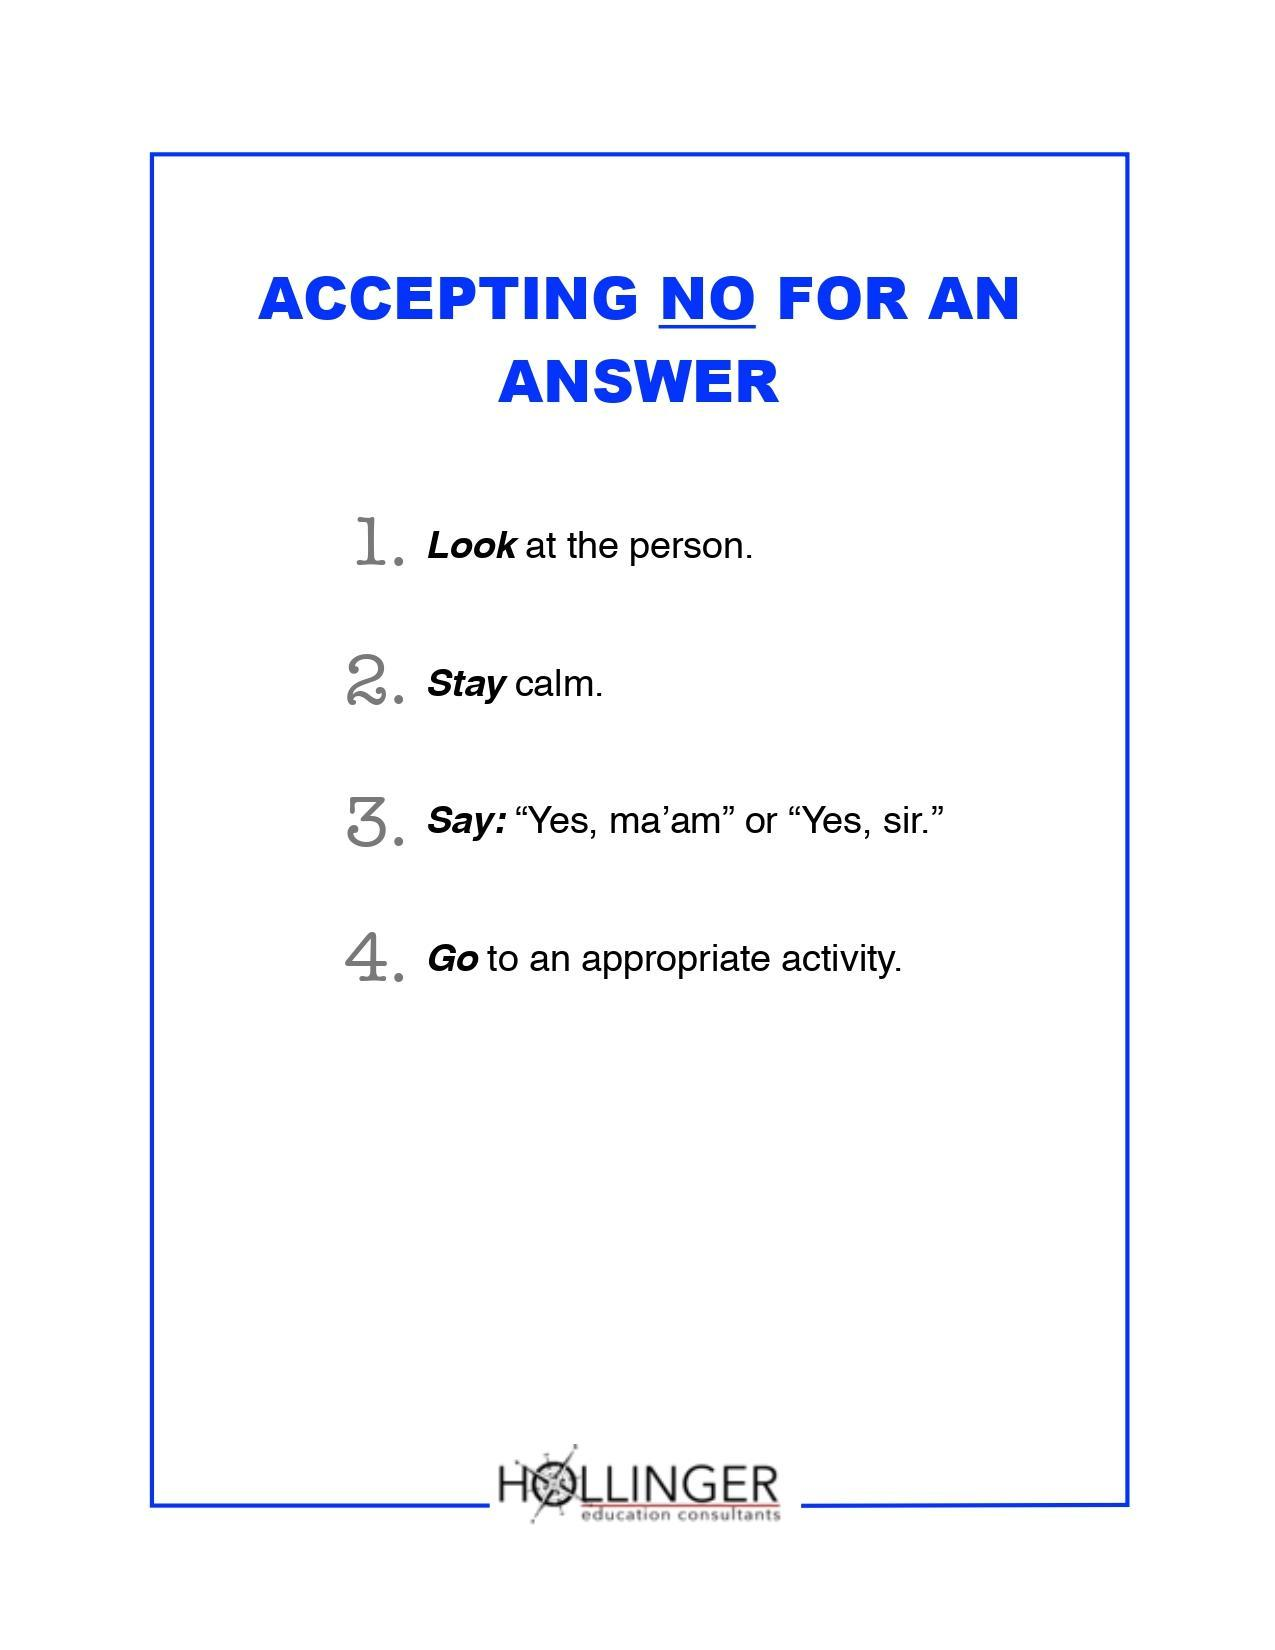 Accepting No for an Answer (English)